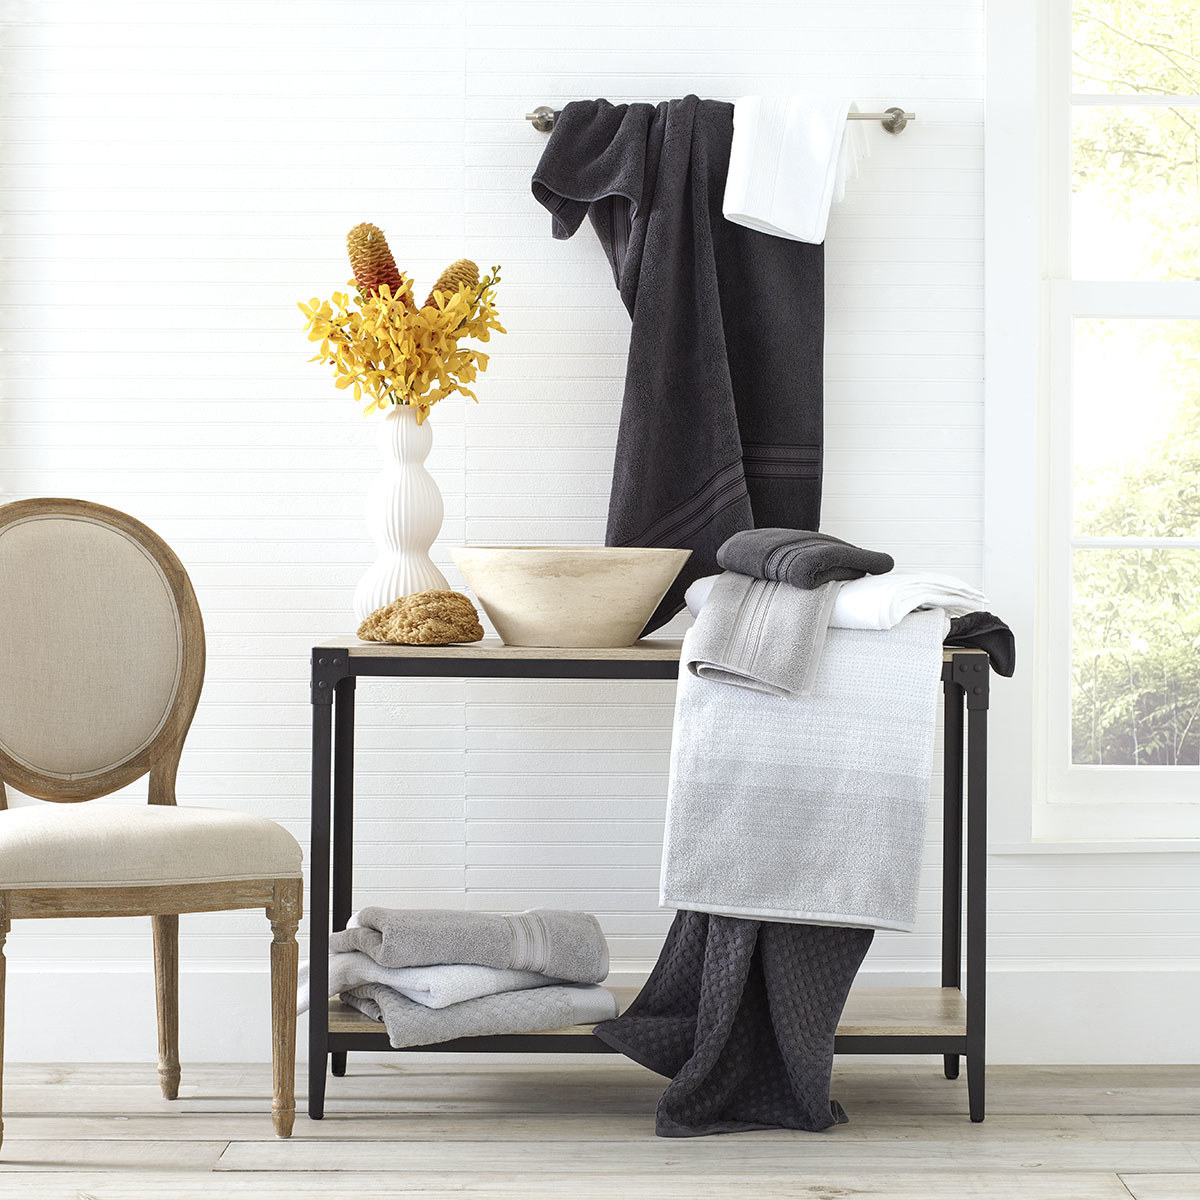 white, black, and grey towels on a shelf